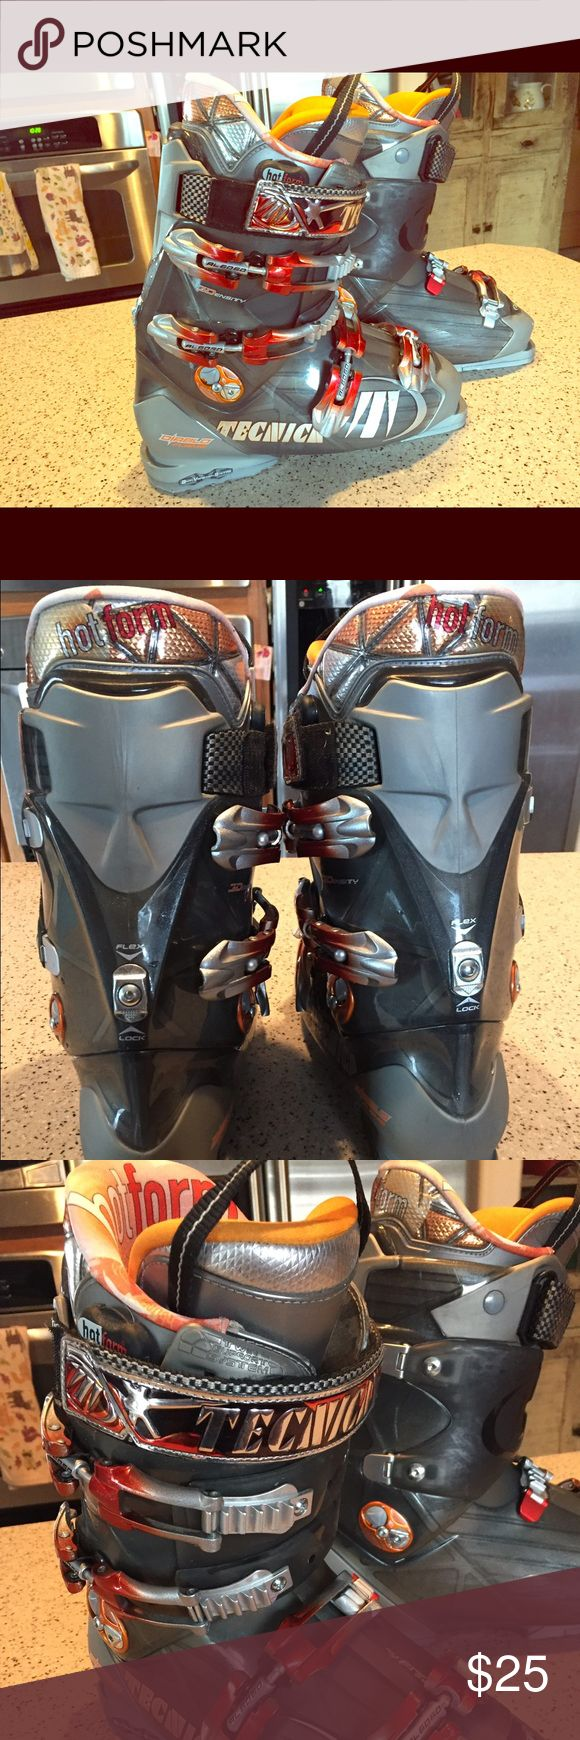 Tecnica ski boots for men Hardly used ski boots from tecnica.  Flashy orange and grey - diablo flame model.  Size 28.5.  Front entry with flex lock option on the shaft. ❄️❄️❄️❄️❄️❄️❄️ Shoes